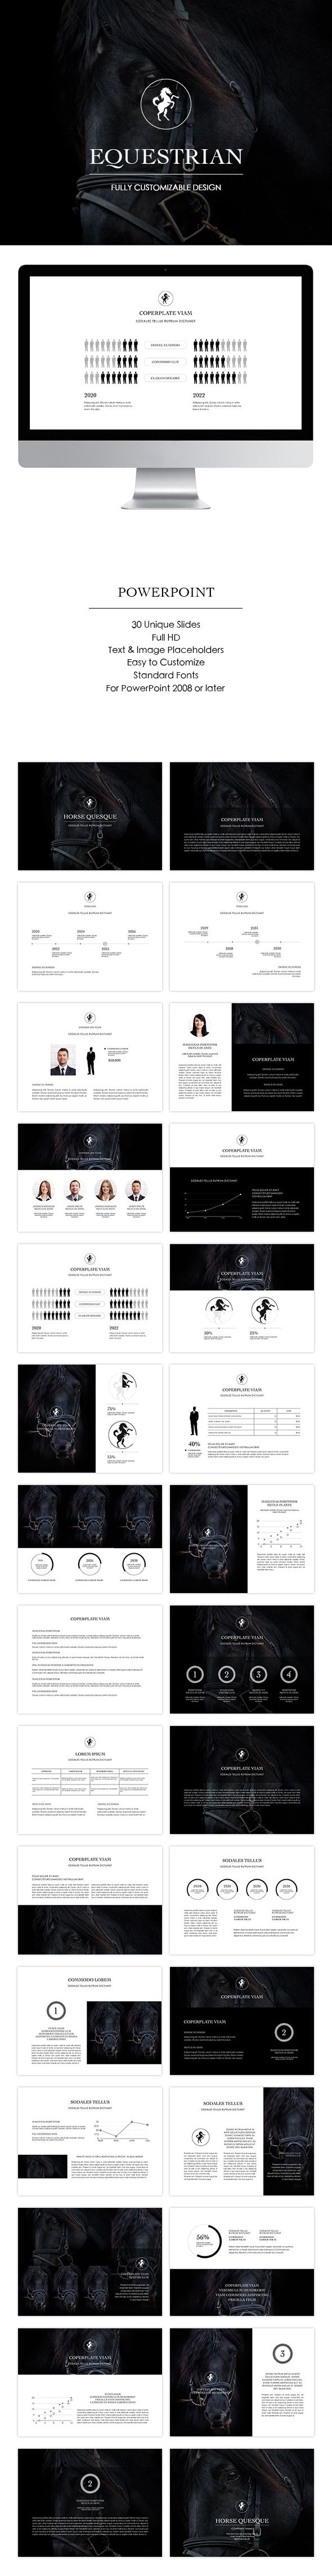 Equestrian - Business PowerPoint Templates